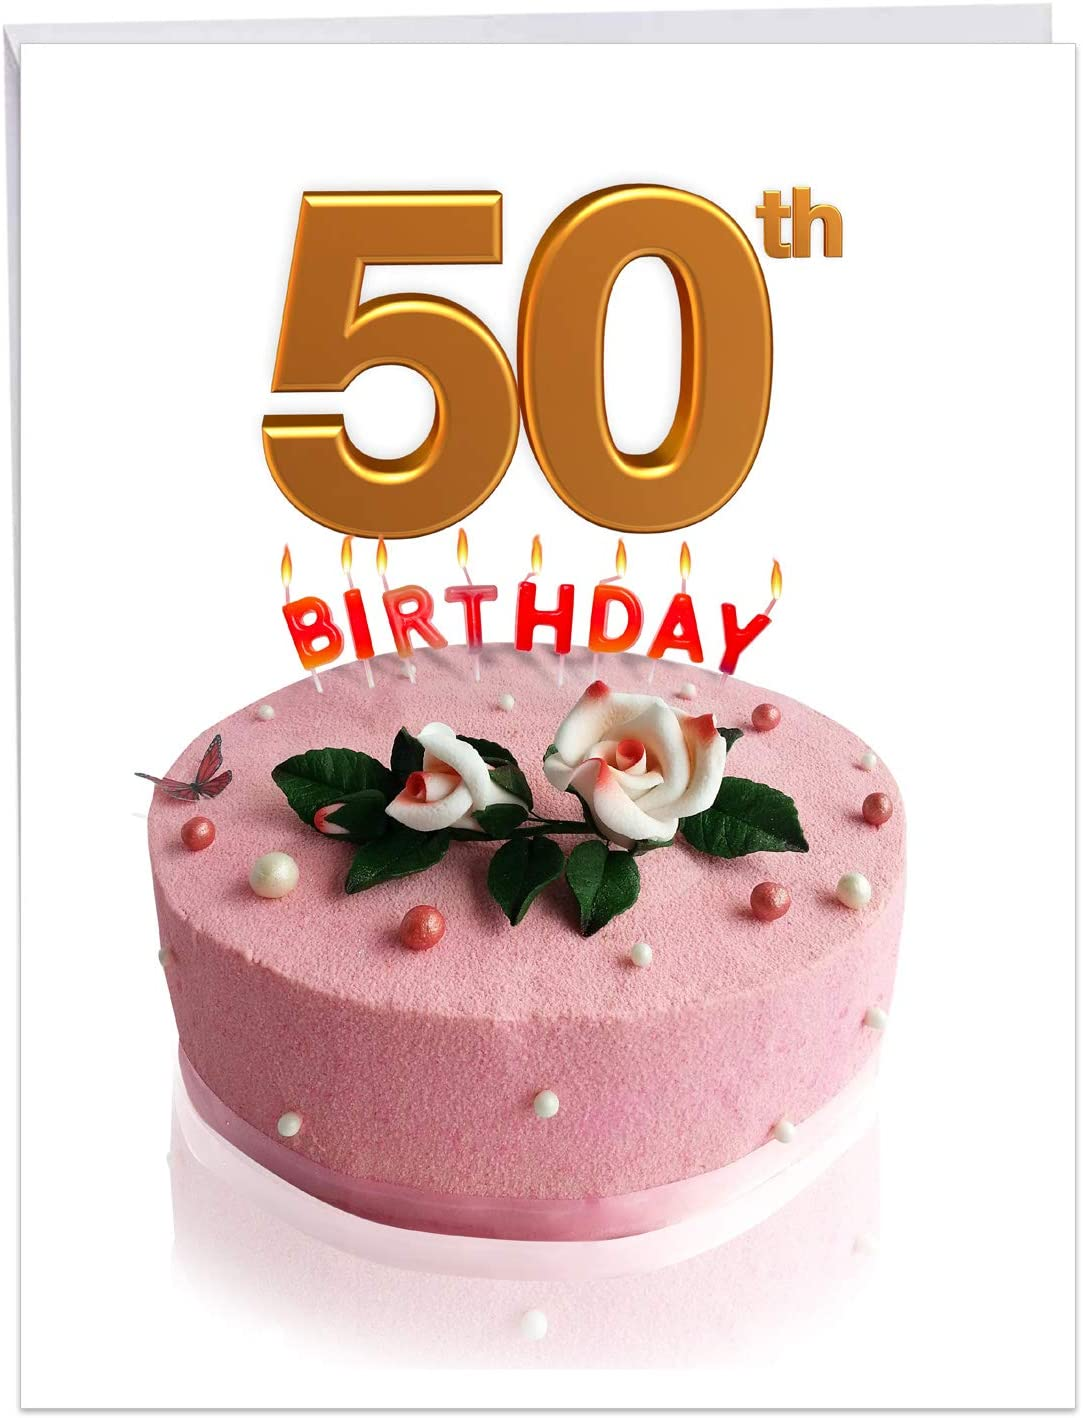 Big Day 50 - Stylish Milestone 50th Birthday Greeting Card with Envelope (Big 8.5 x 11 Inch) - Frosted Pink Cake for Happy Birthday Celebration - Big Congratulations Card for Men, Women J7060FMBG